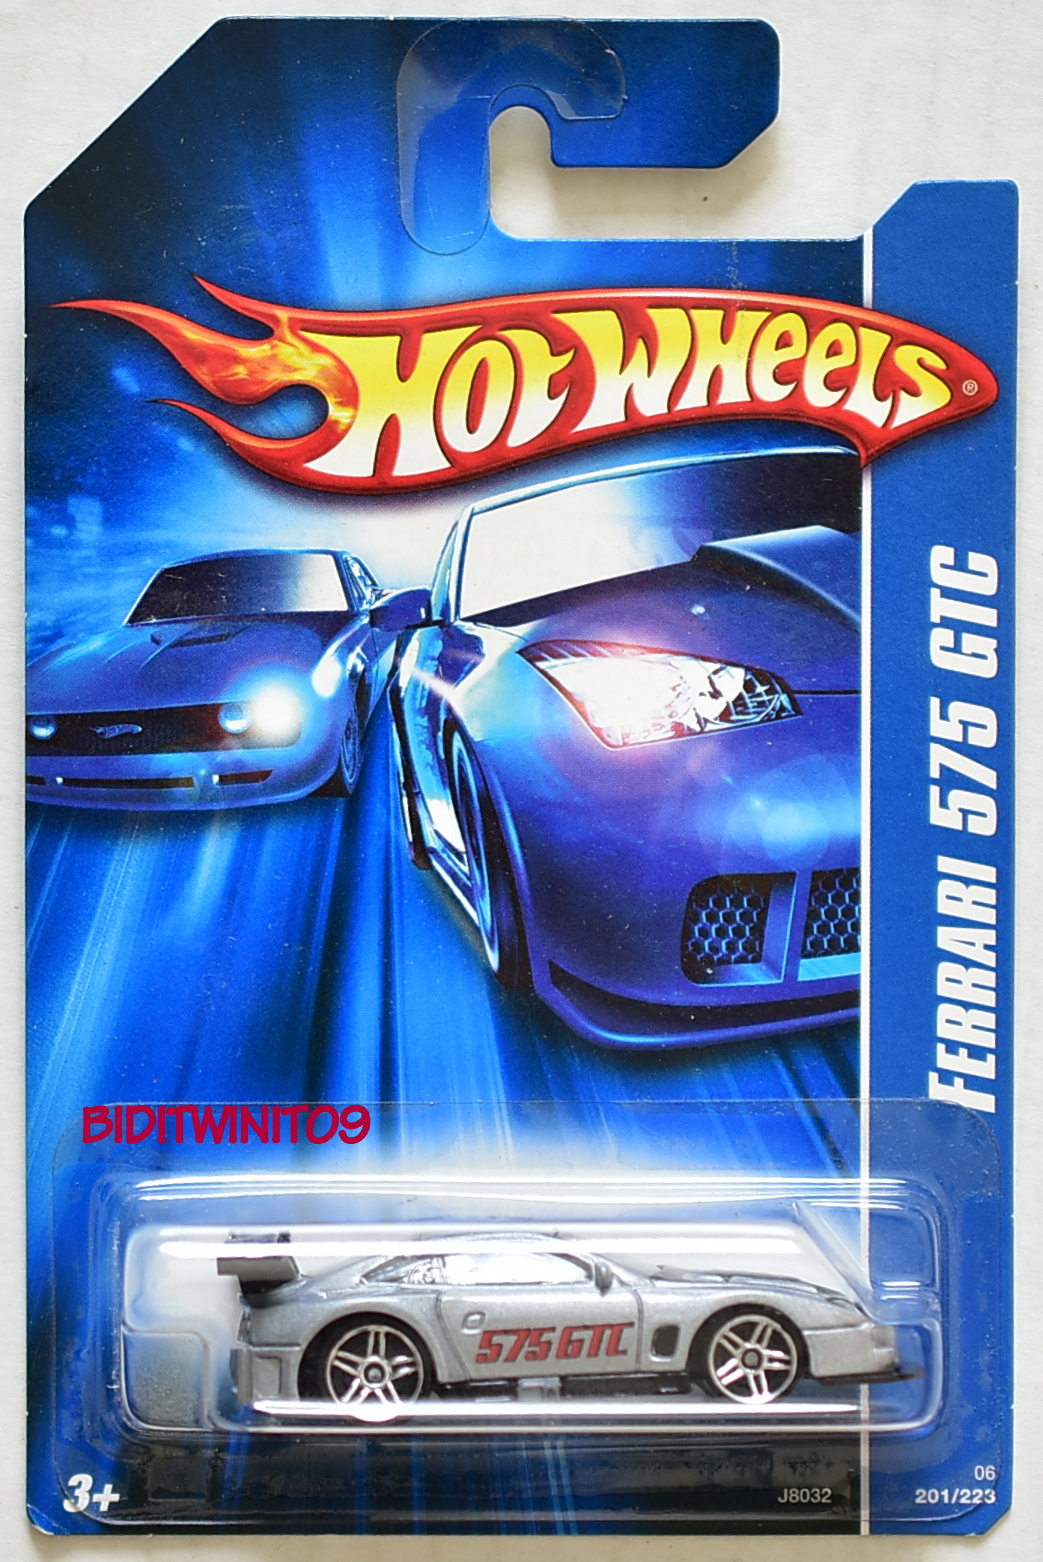 HOT WHEELS 2006 FERRARI 575 GTC SILVER